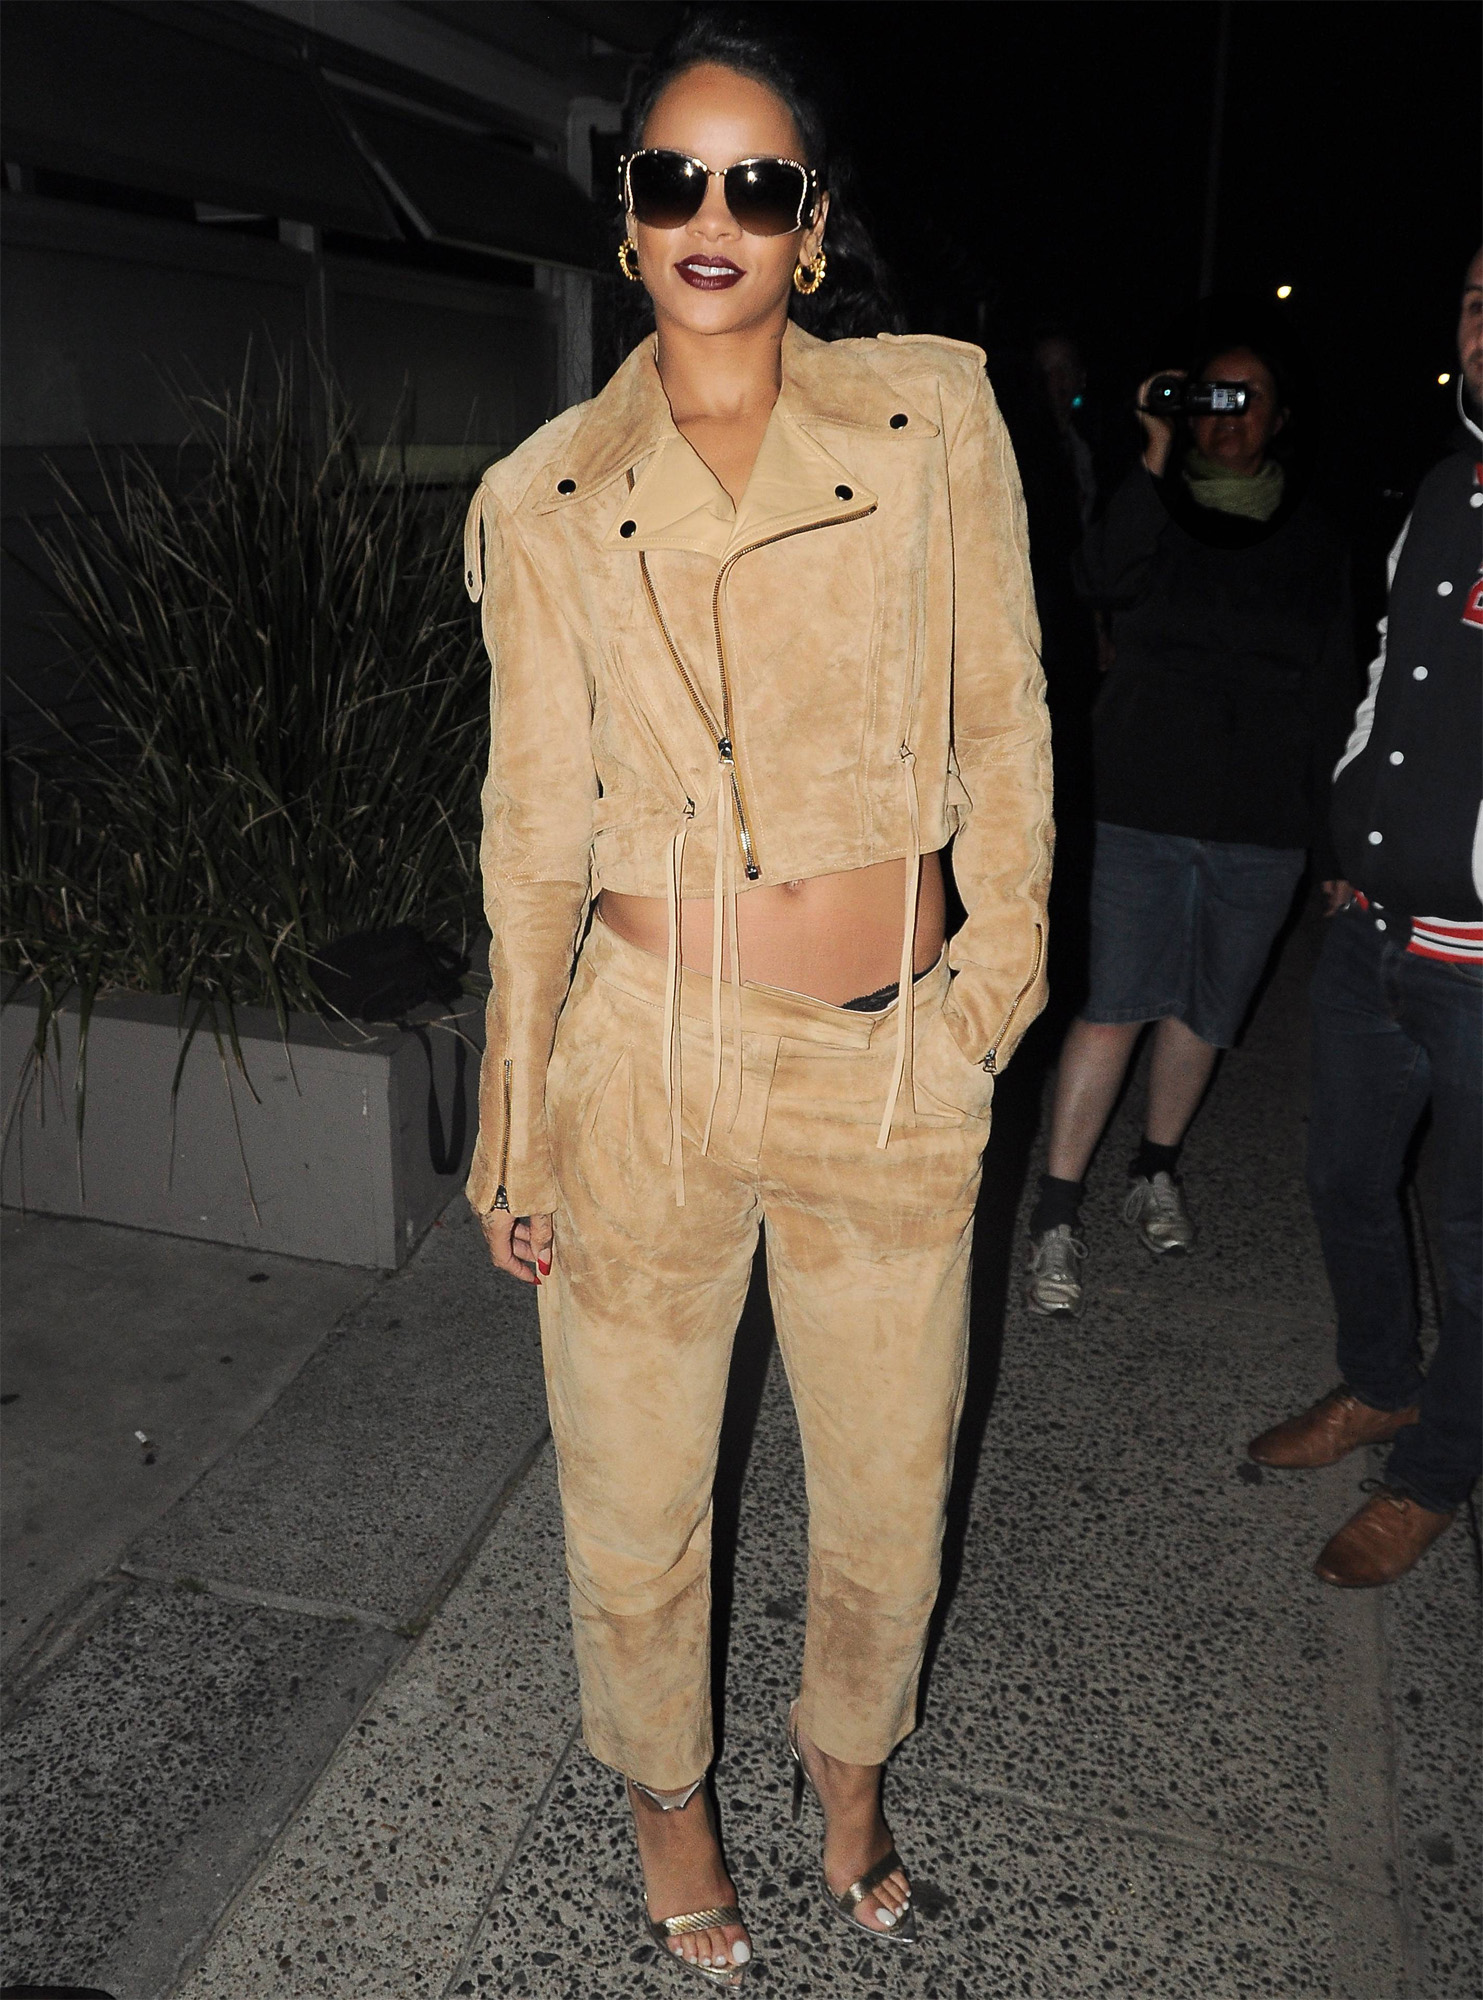 Rihanna in Sydney wearing Holmes & Yang cropped leather moto jacket and suede trousers with Roberto Cavalli snakeskin sandals